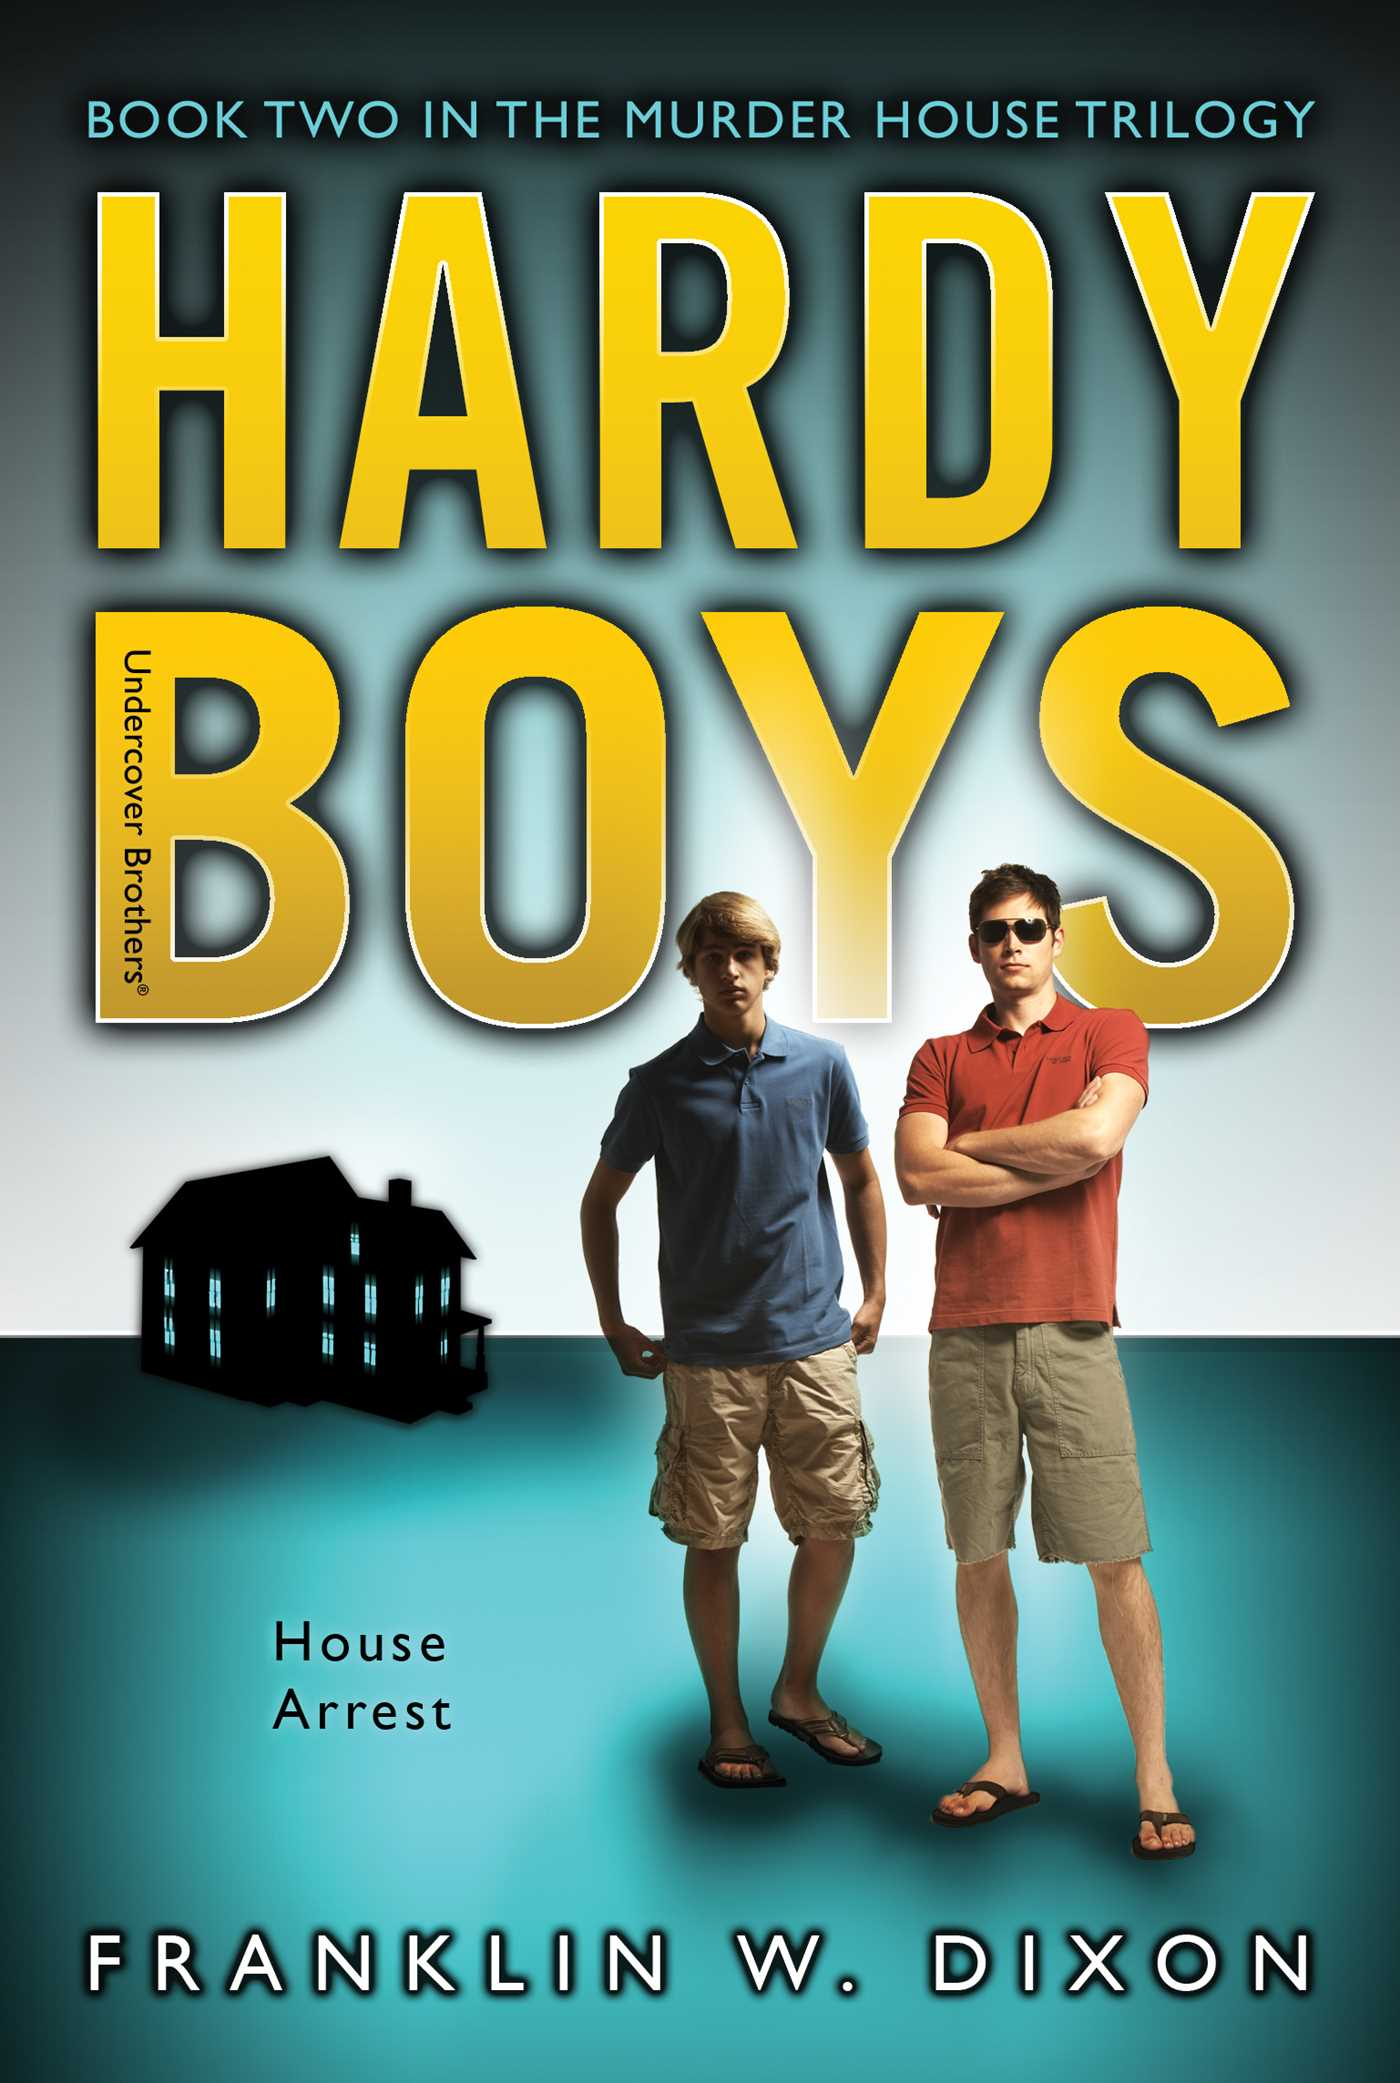 a literary analysis of the hardy boys by franklin w dixon In the bombay boomerang by franklin w dixon the hardy boys get a strange phone call that is involved in a case that will affect national security joe hardy accidentally dials the wrong number and he calls the pentagon and the man on the other end of the phone says bombay boomerang and hangs up.